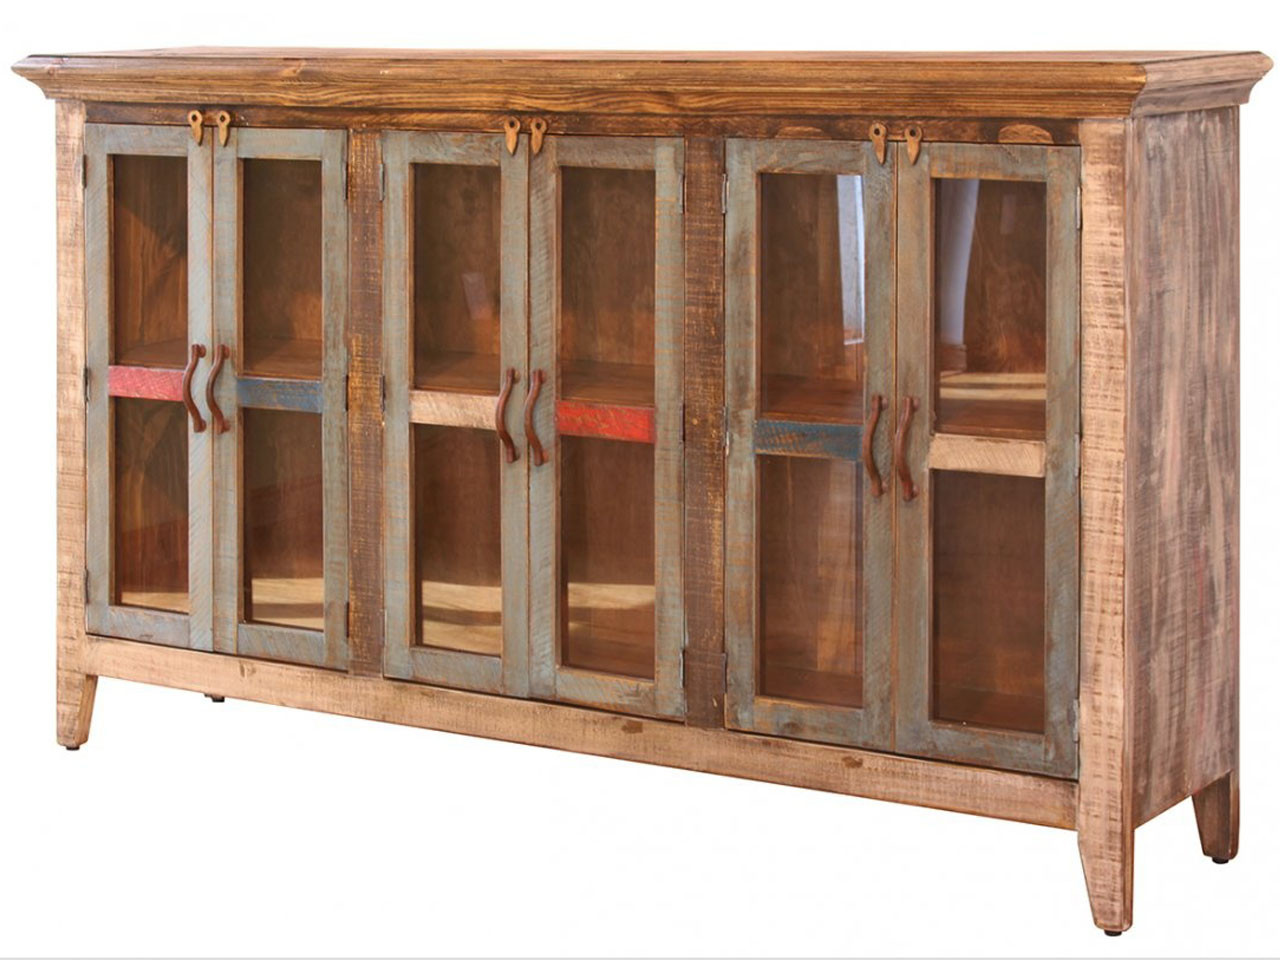 Antique MultiColor Console with 6 Glass Panel Doors Vintage Oak